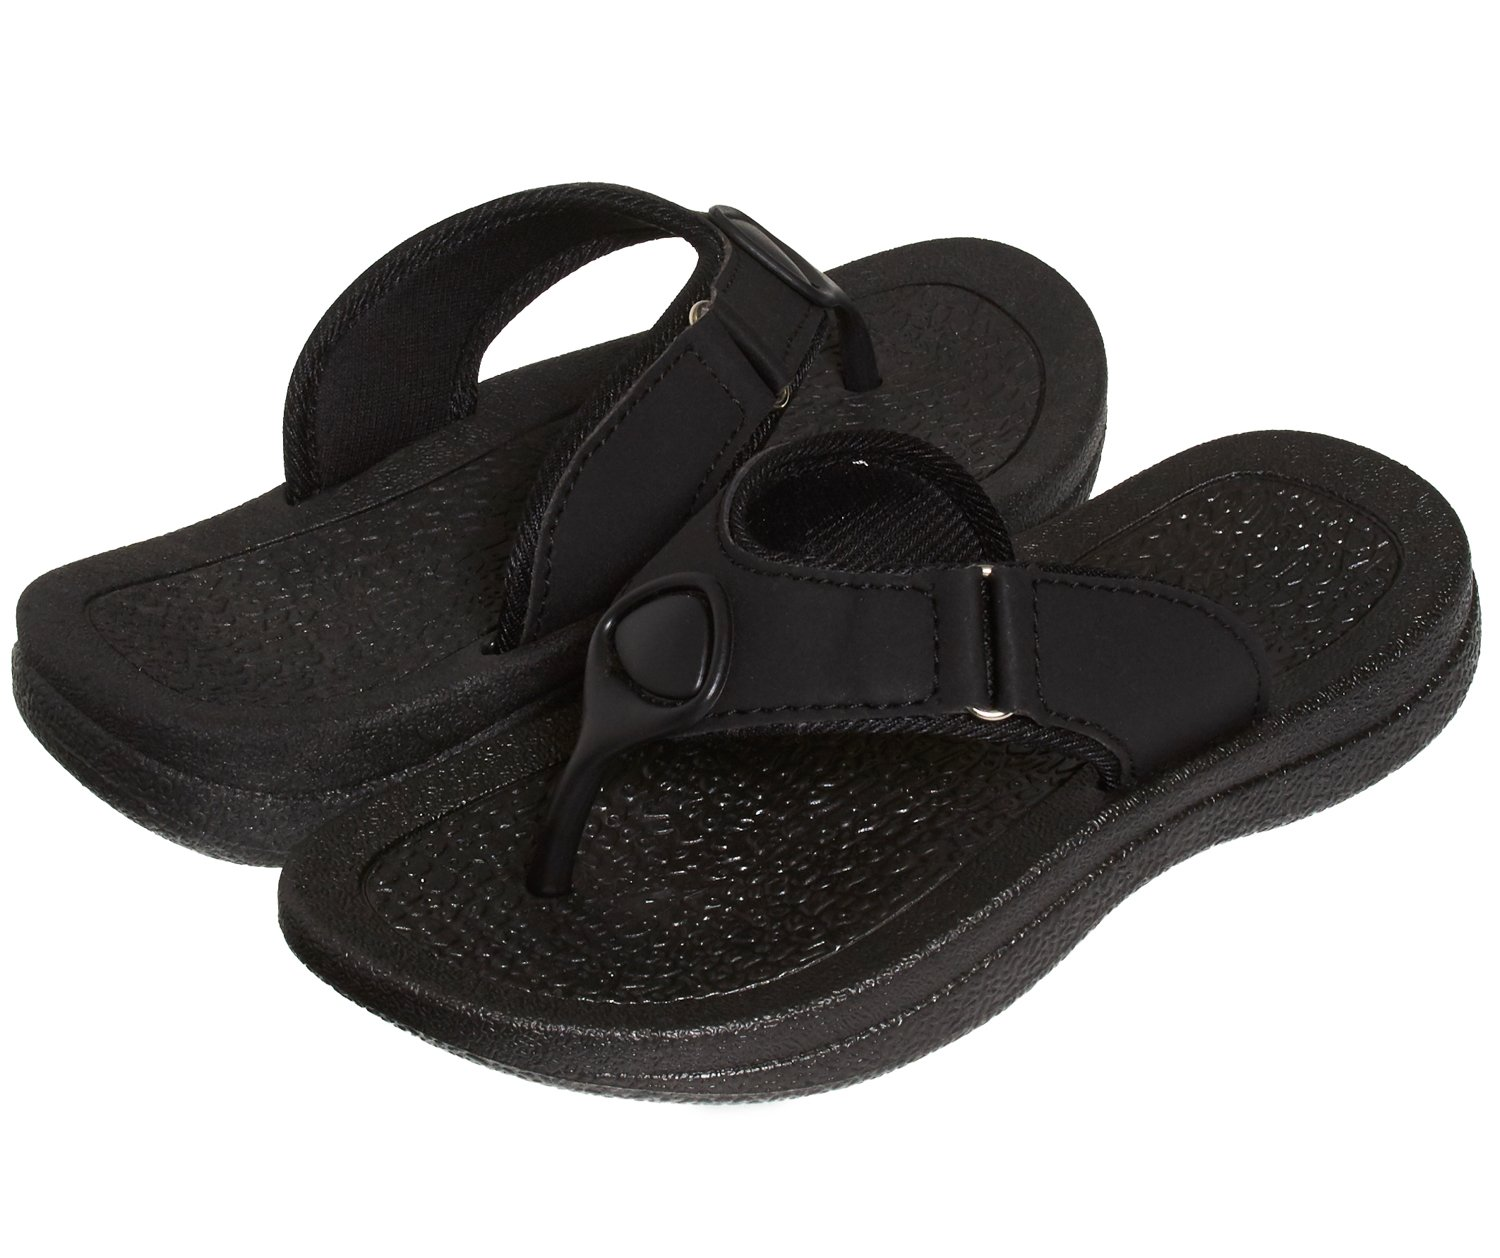 9c796df0d Get Quotations · Skysole Boys Rugged PU Ring Thong Strap Sandals (See More  Colors and Sizes)